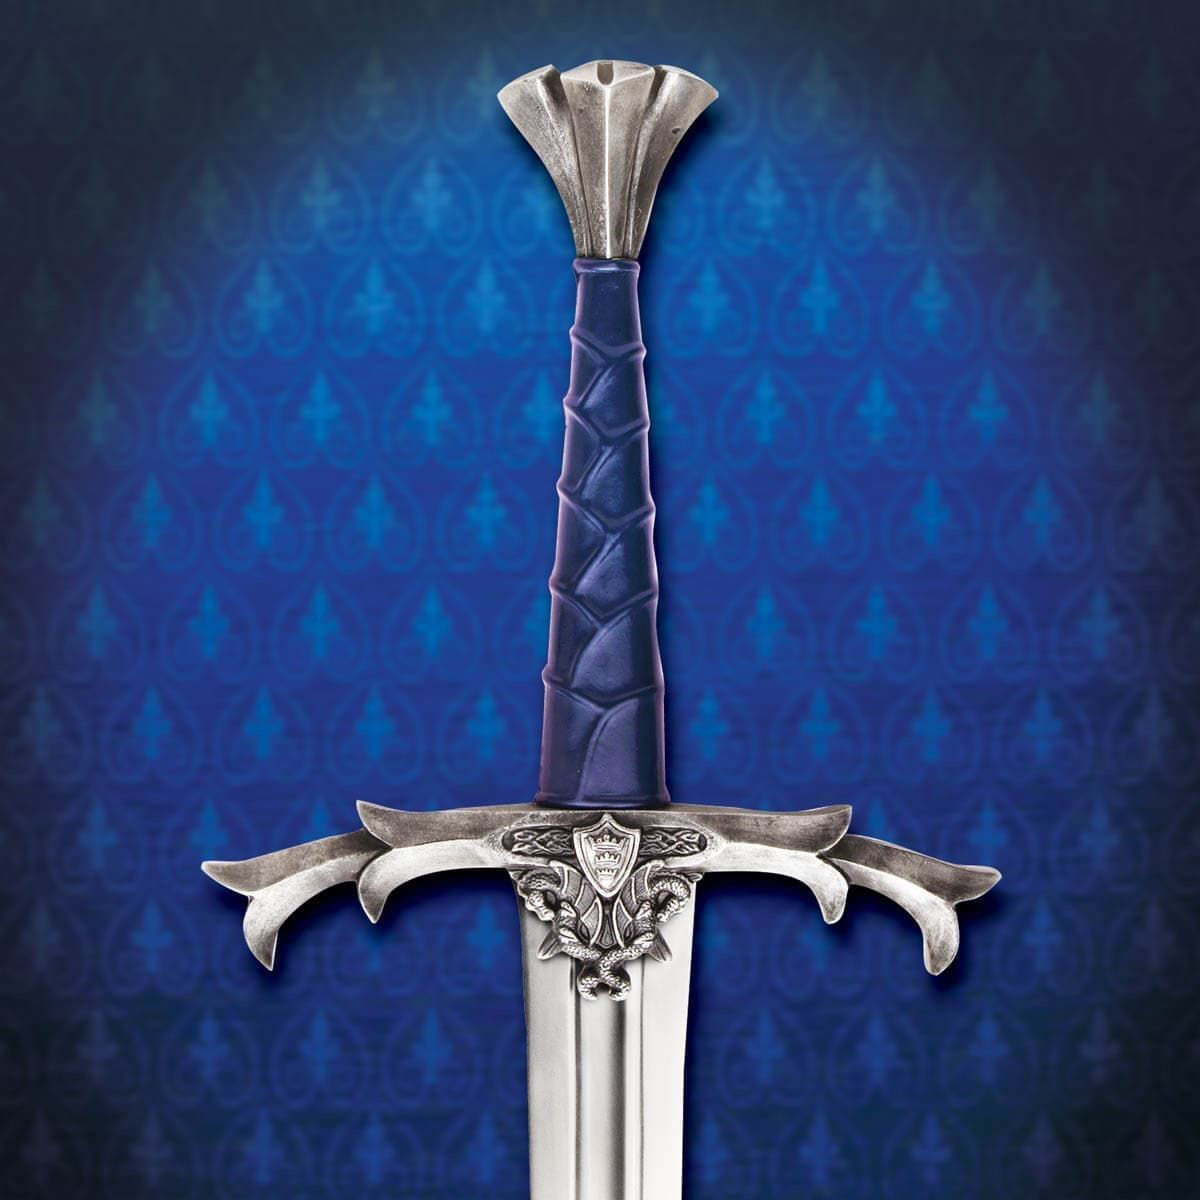 The Sword Excalibur